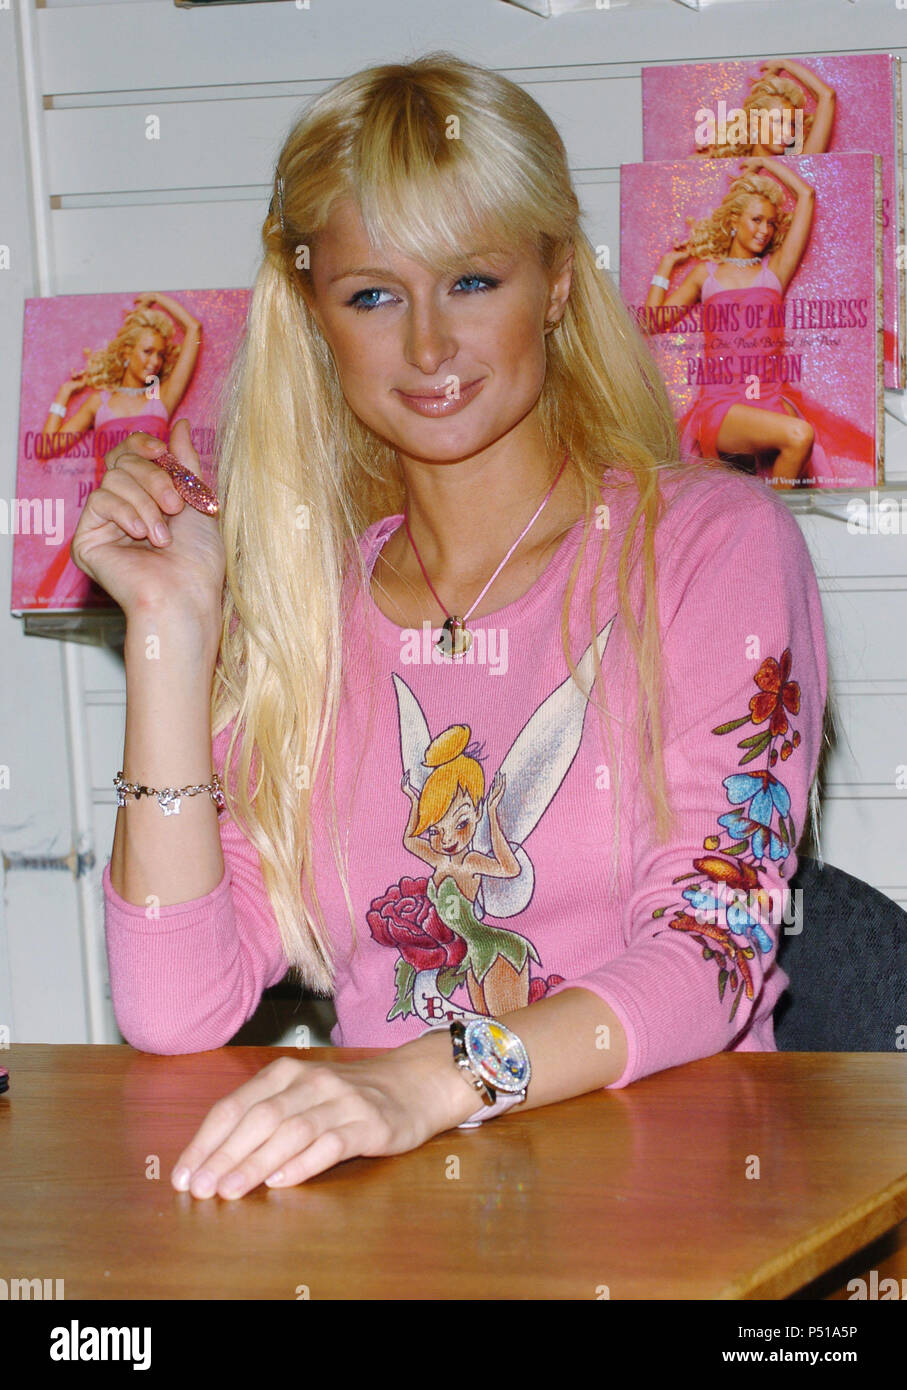 Paris Hilton Was Signing Her Book Confessions Of An Heiress At The Brentano Westfield Shoping Mall In Los Angeles September 7 2004 Hiltonparis004 Red Carpet Event Vertical Usa Film Industry